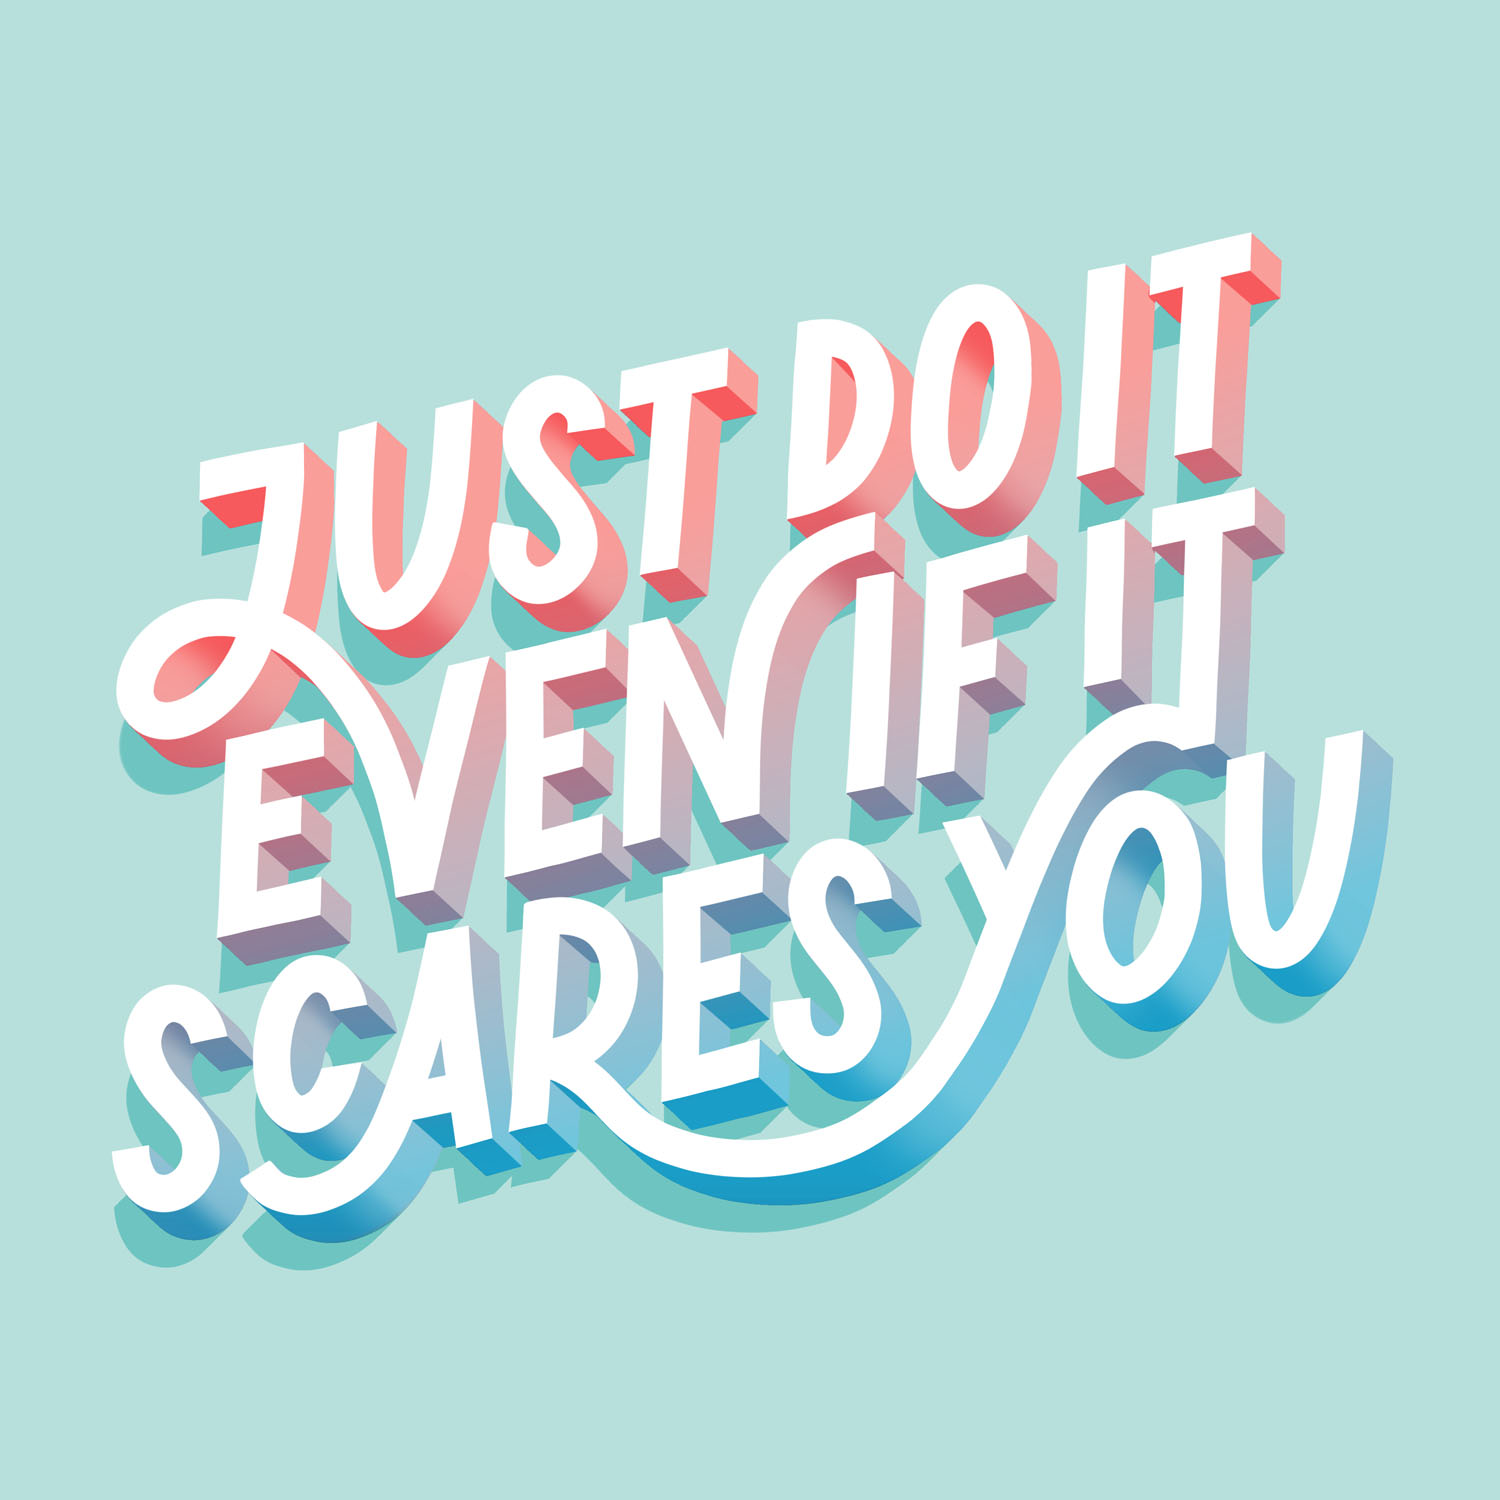 Just Do It Even If It Scares You